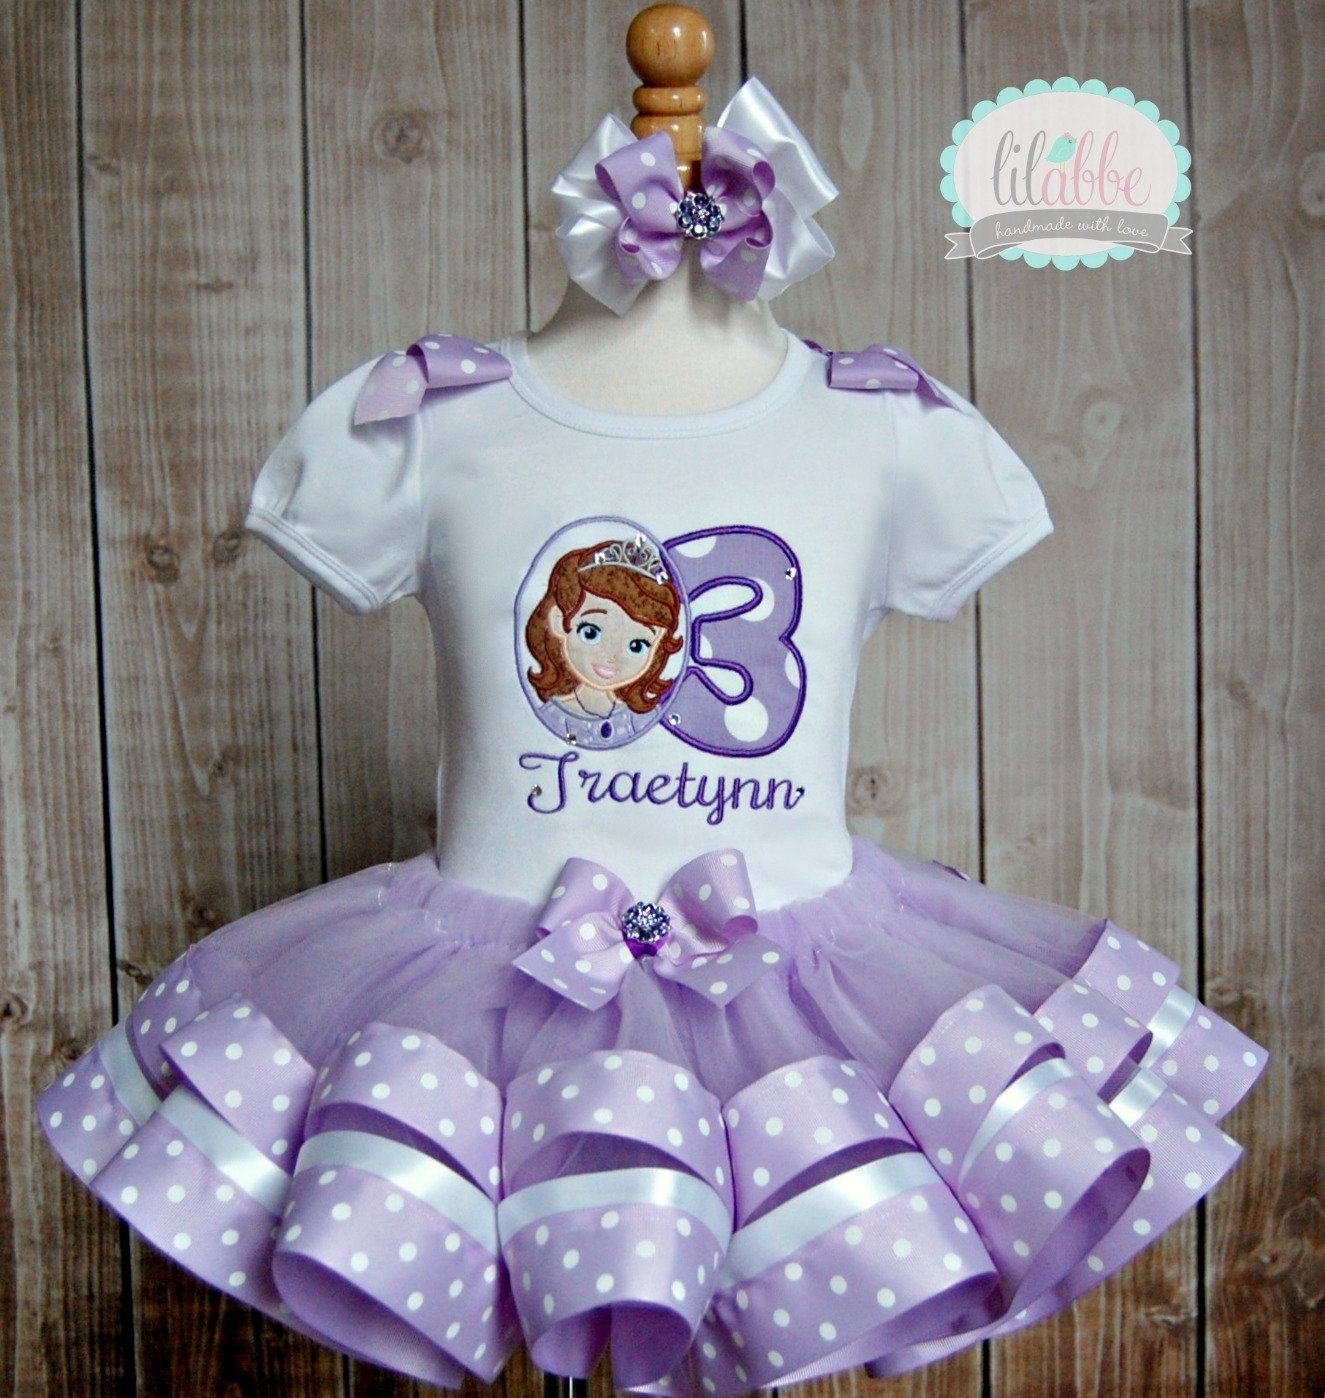 4668c6e66 sofia the first birthday party dress | Request a custom order and have  something made just for you.